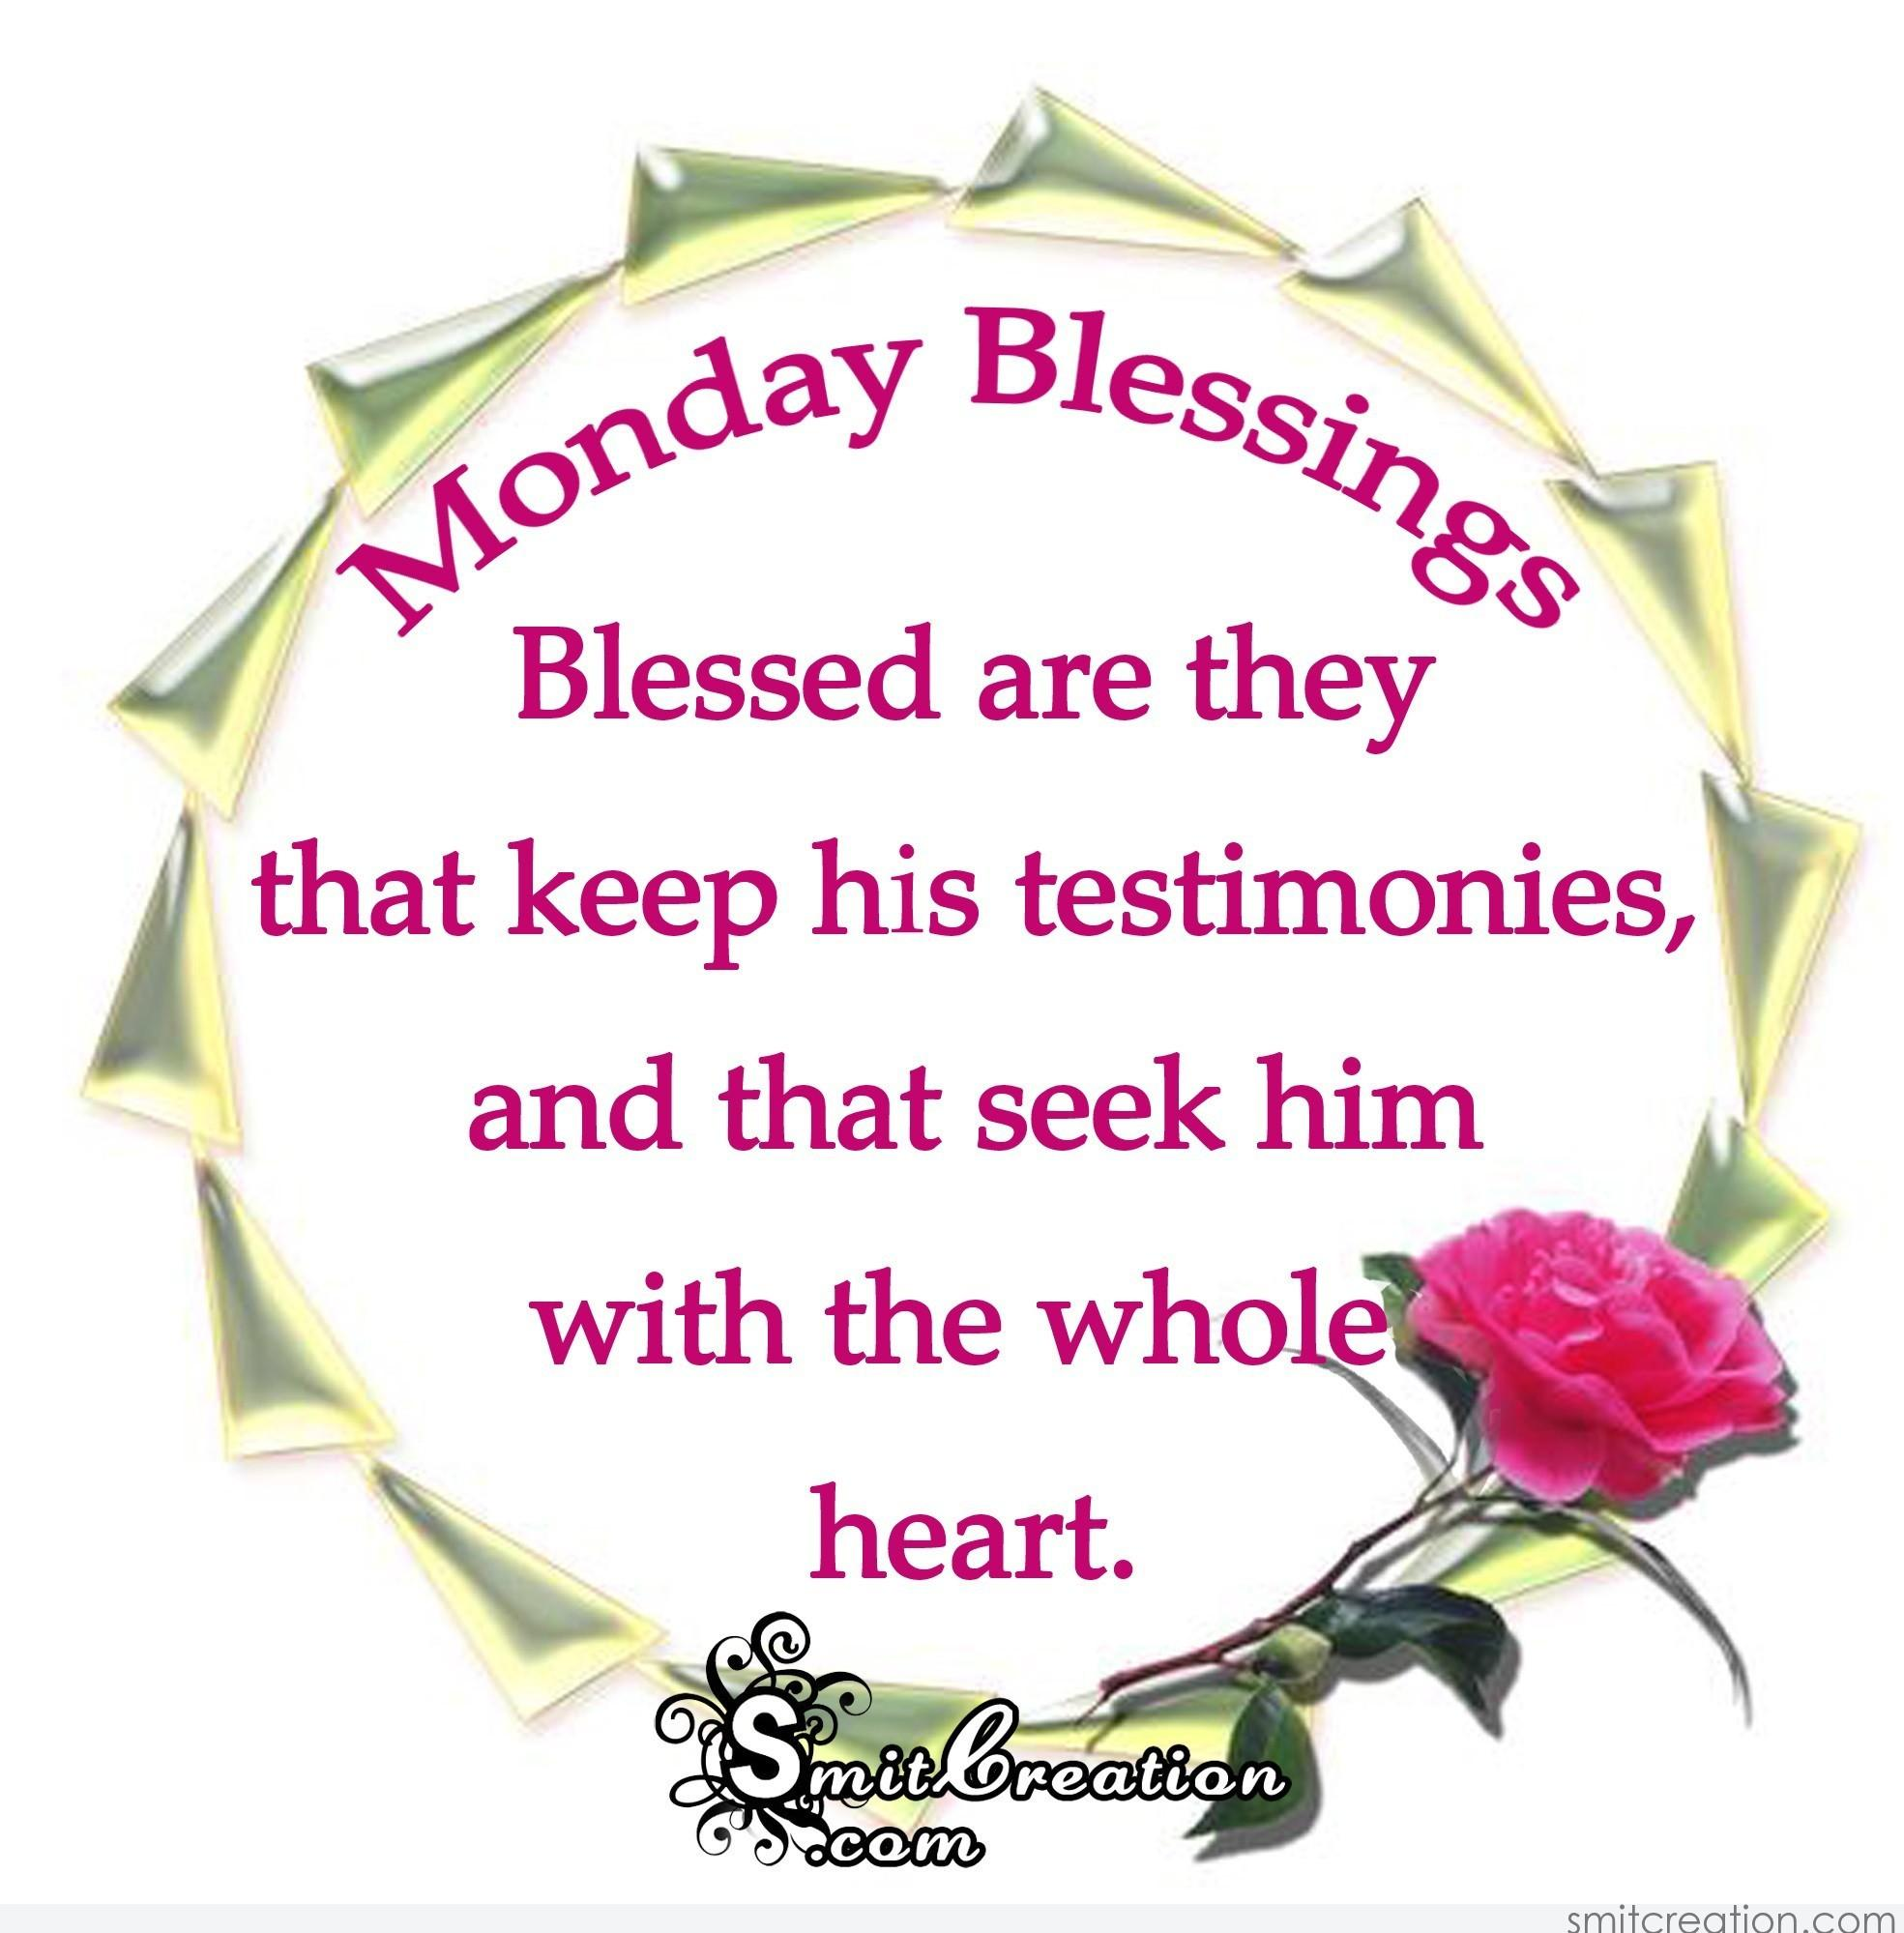 Monday Blessings Blessed Are They That Keep His Testimonies